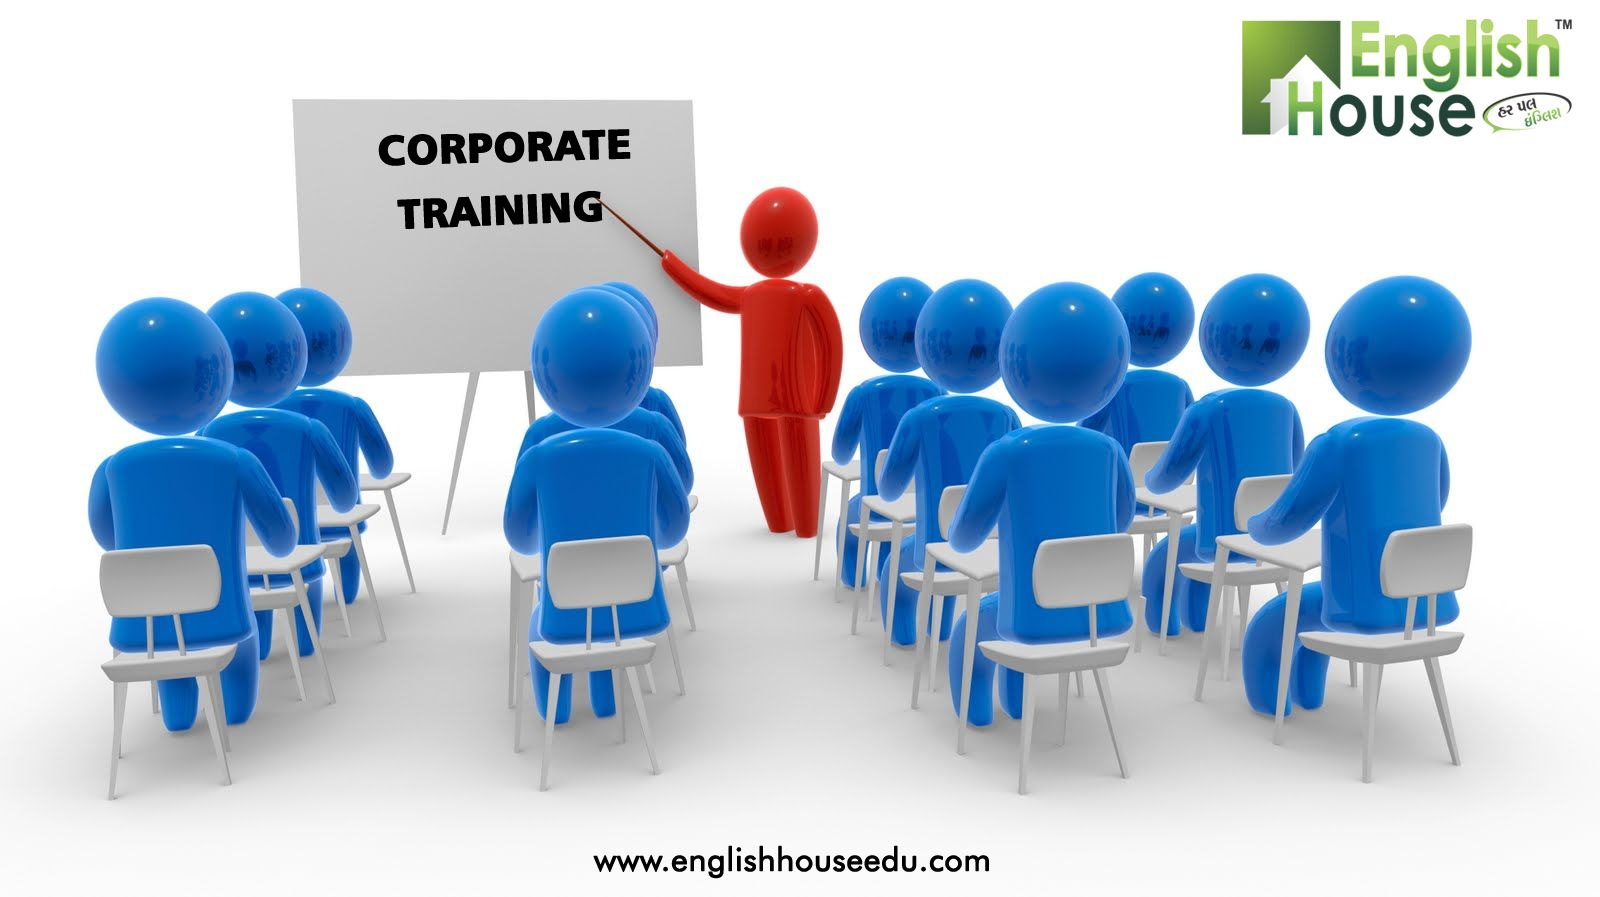 If You Are Looking For Top Corporate Training Center In Ahmedabad